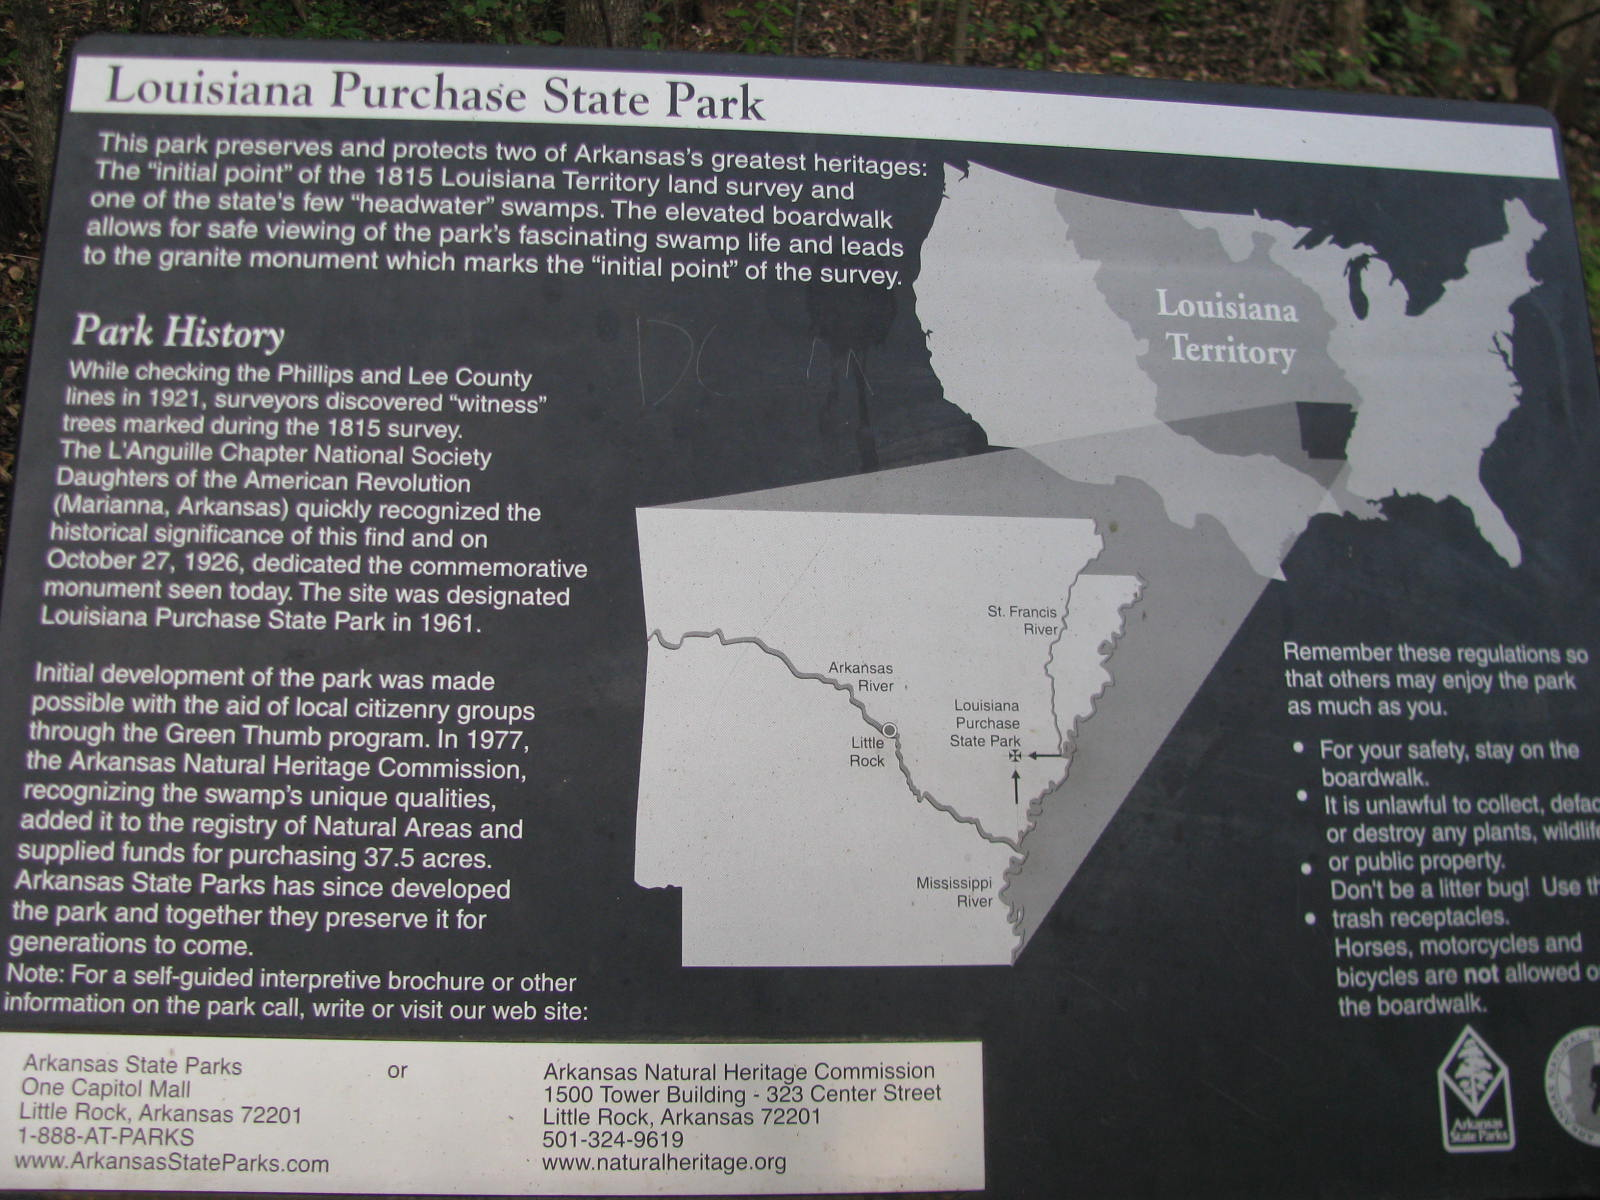 IMG_3457 Initial Of Louisiana Purchase Map on map of great plains, map of mississippi river, map of constitution, map of war of 1812, map of breed's hill, map of ute tribe, map of united states, map of manifest destiny, map of mexican cession, map of new orleans, map of lp, map of new spain, map of santa fe trail, map of adams-onis treaty, map of rio grande, map of chihuahua desert, map of trail of tears, map of annexation, map of fugitive slave act, map of northwest ordinance,